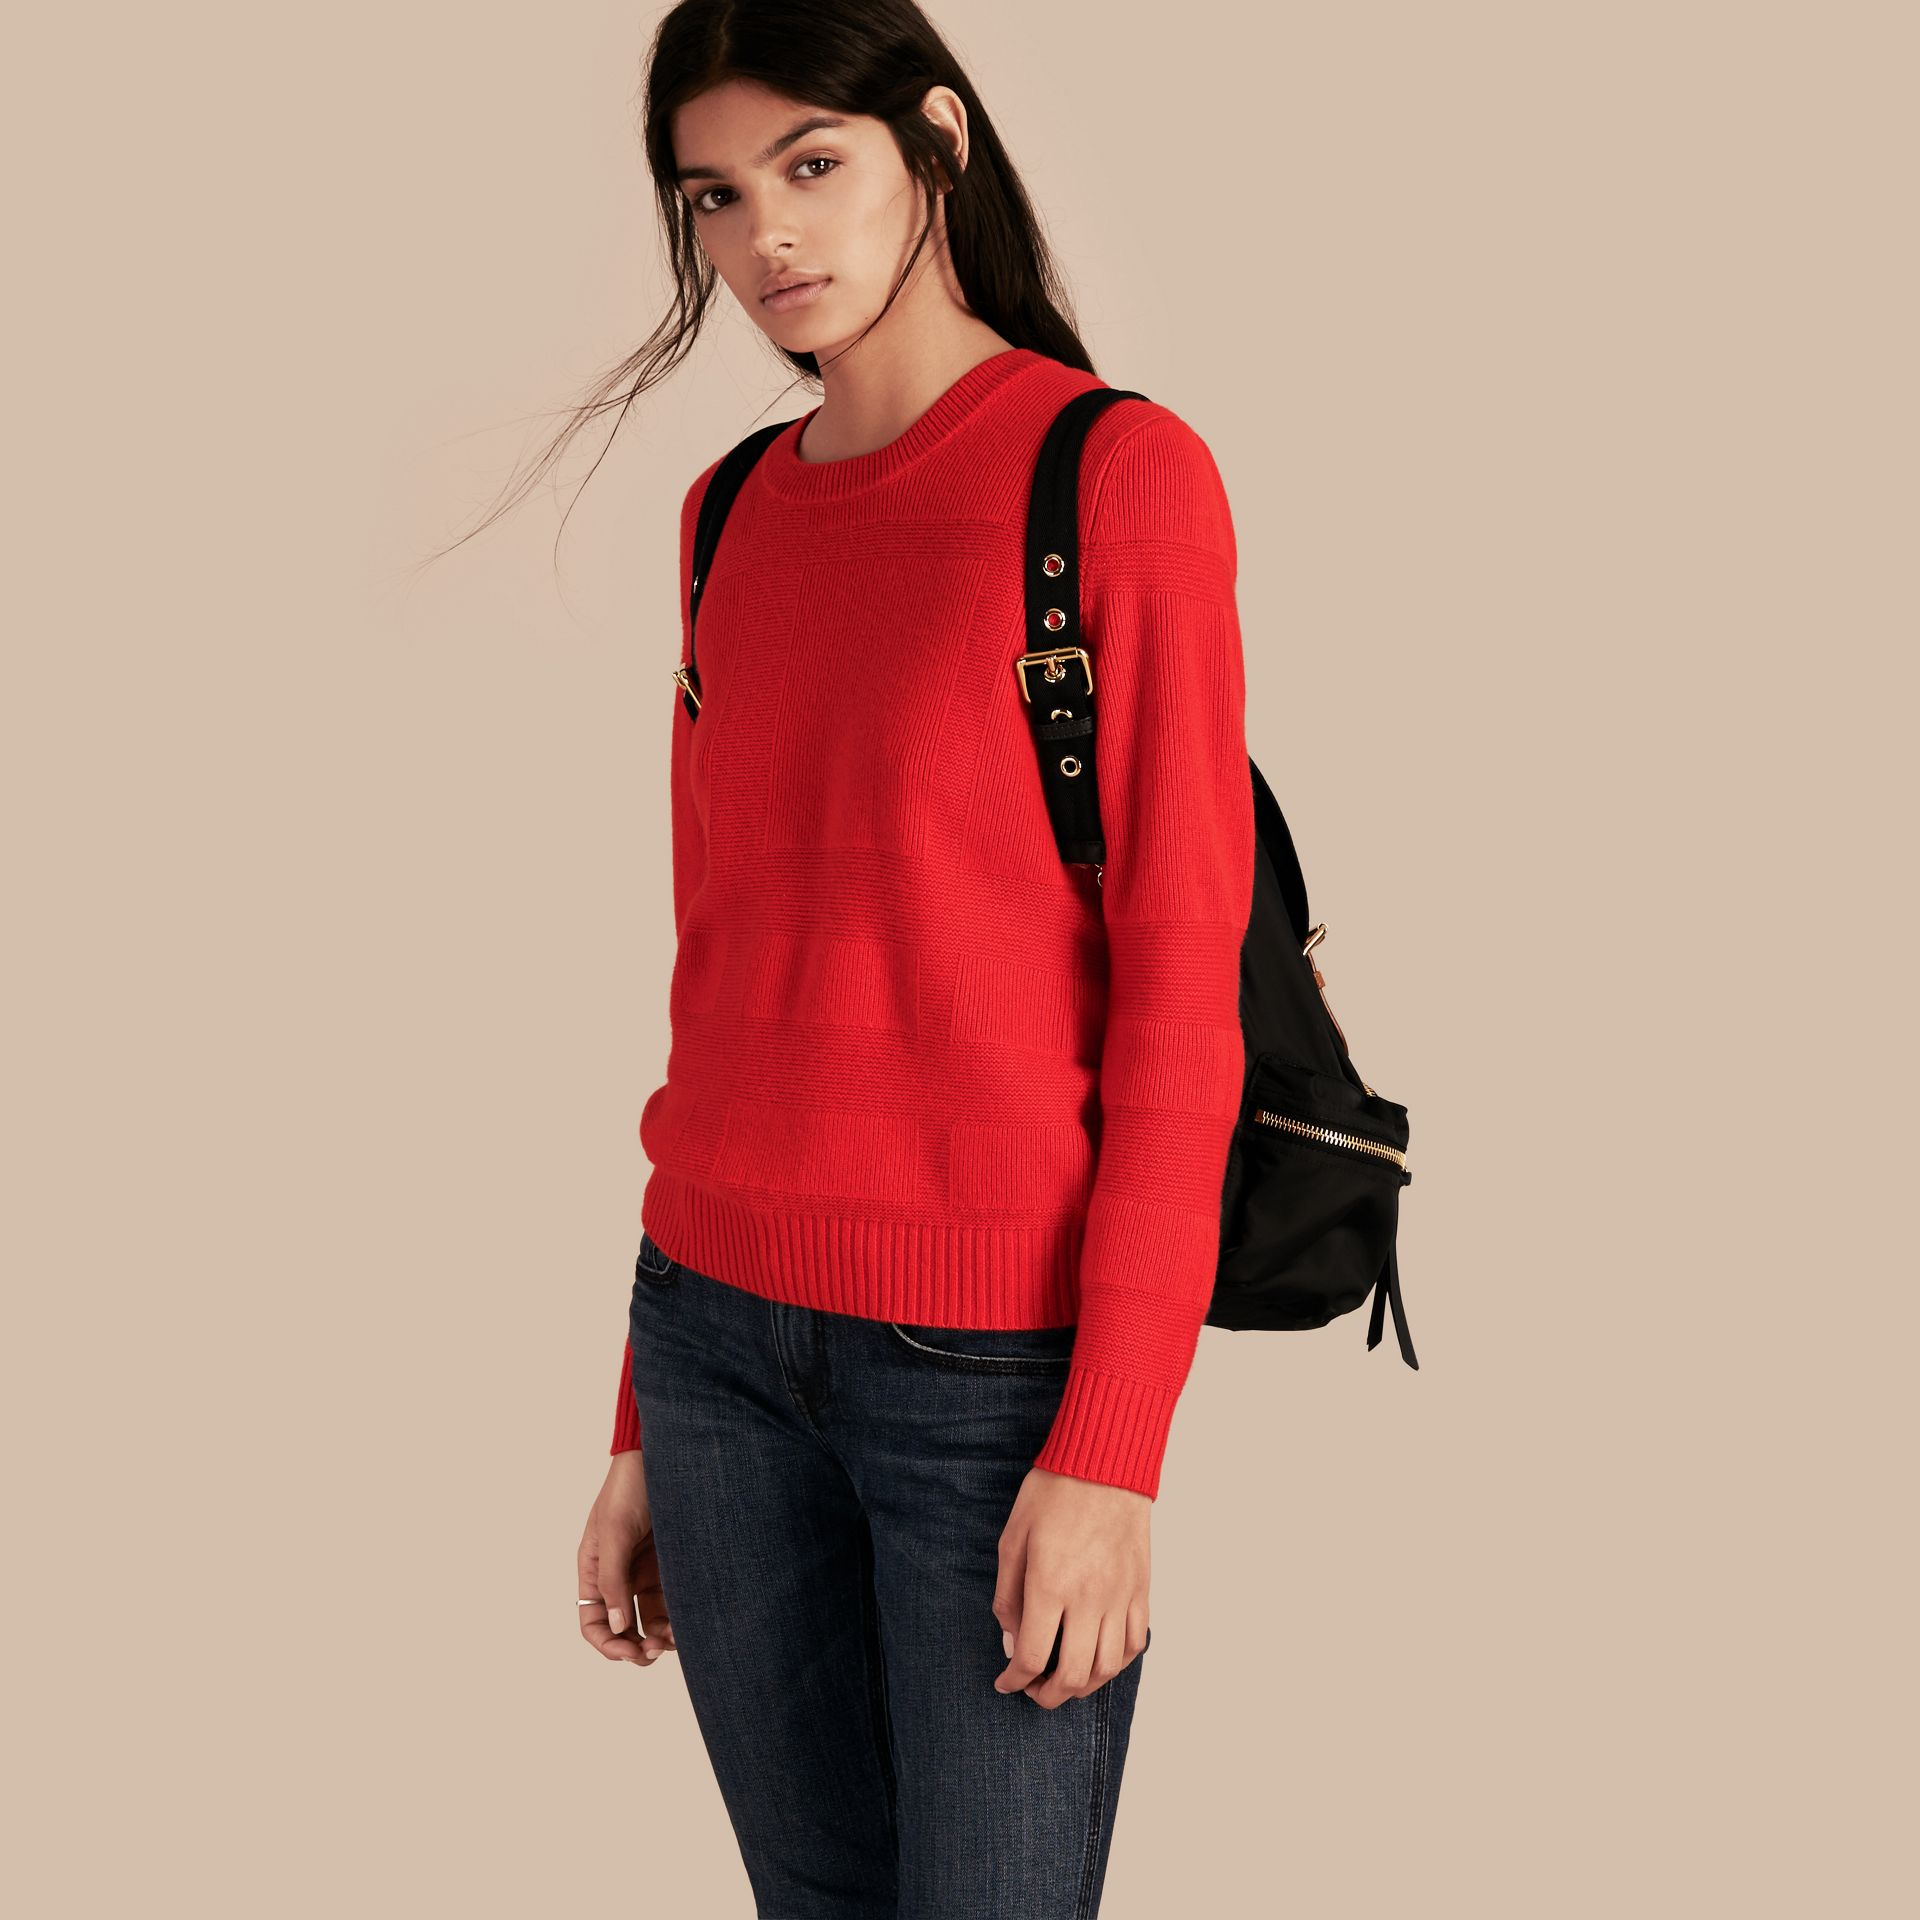 Bright military red Check-knit Wool Cashmere Sweater Bright Military Red - gallery image 1